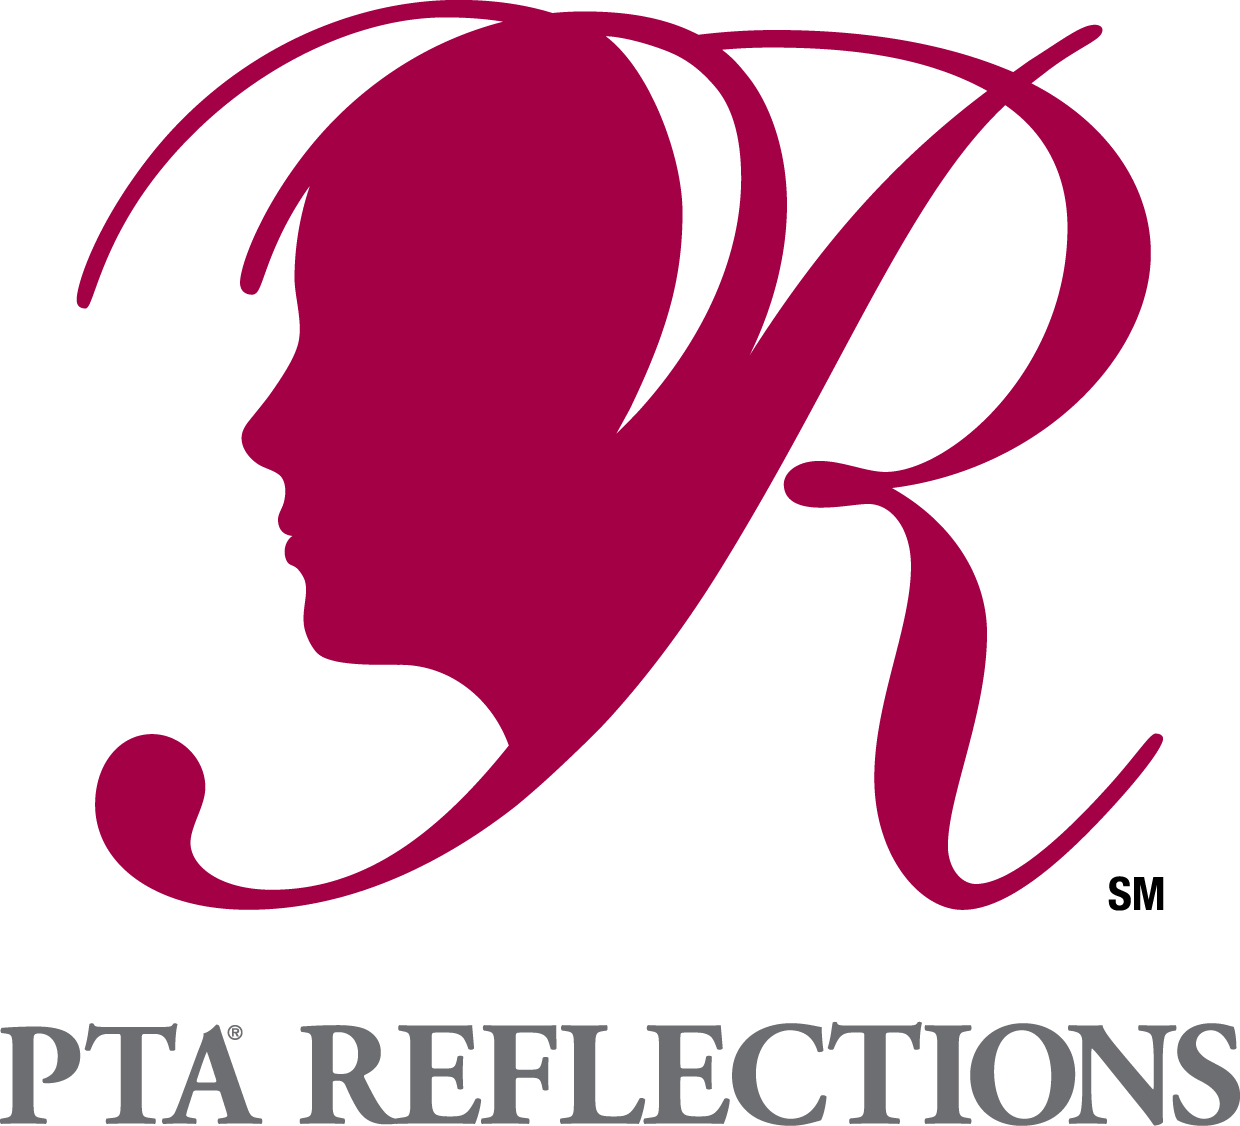 Reflections_logo.png